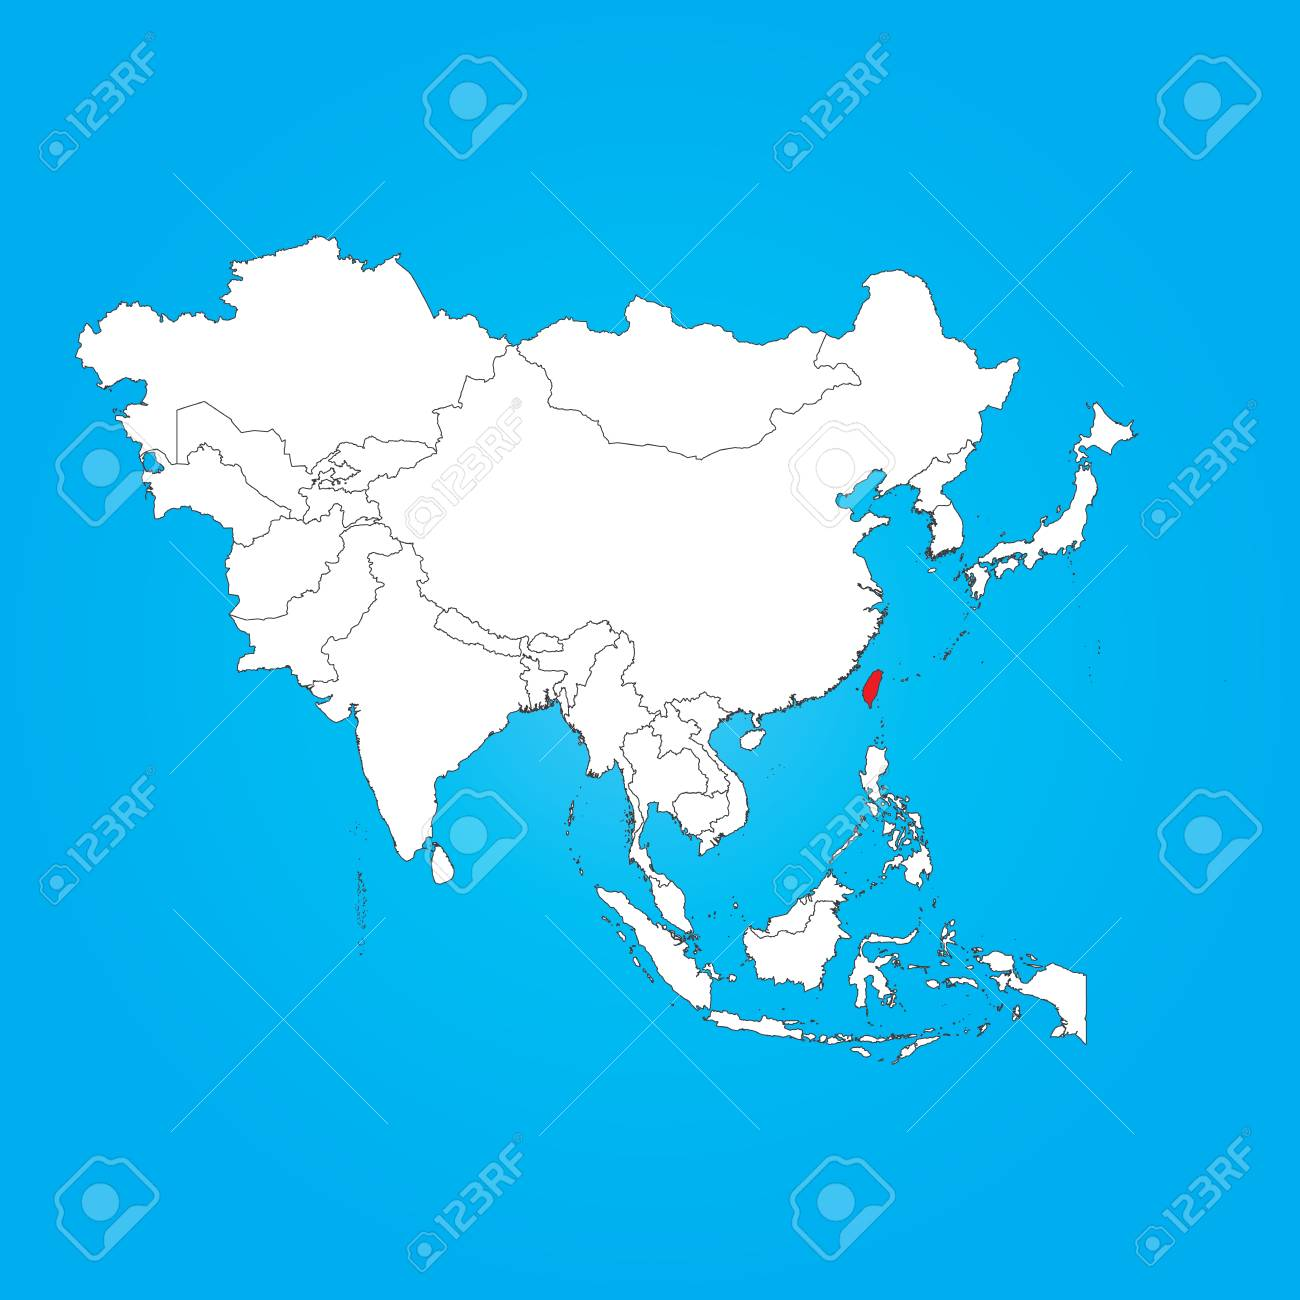 Map Of Asia Taiwan.A Map Of Asia With A Selected Country Of Taiwan